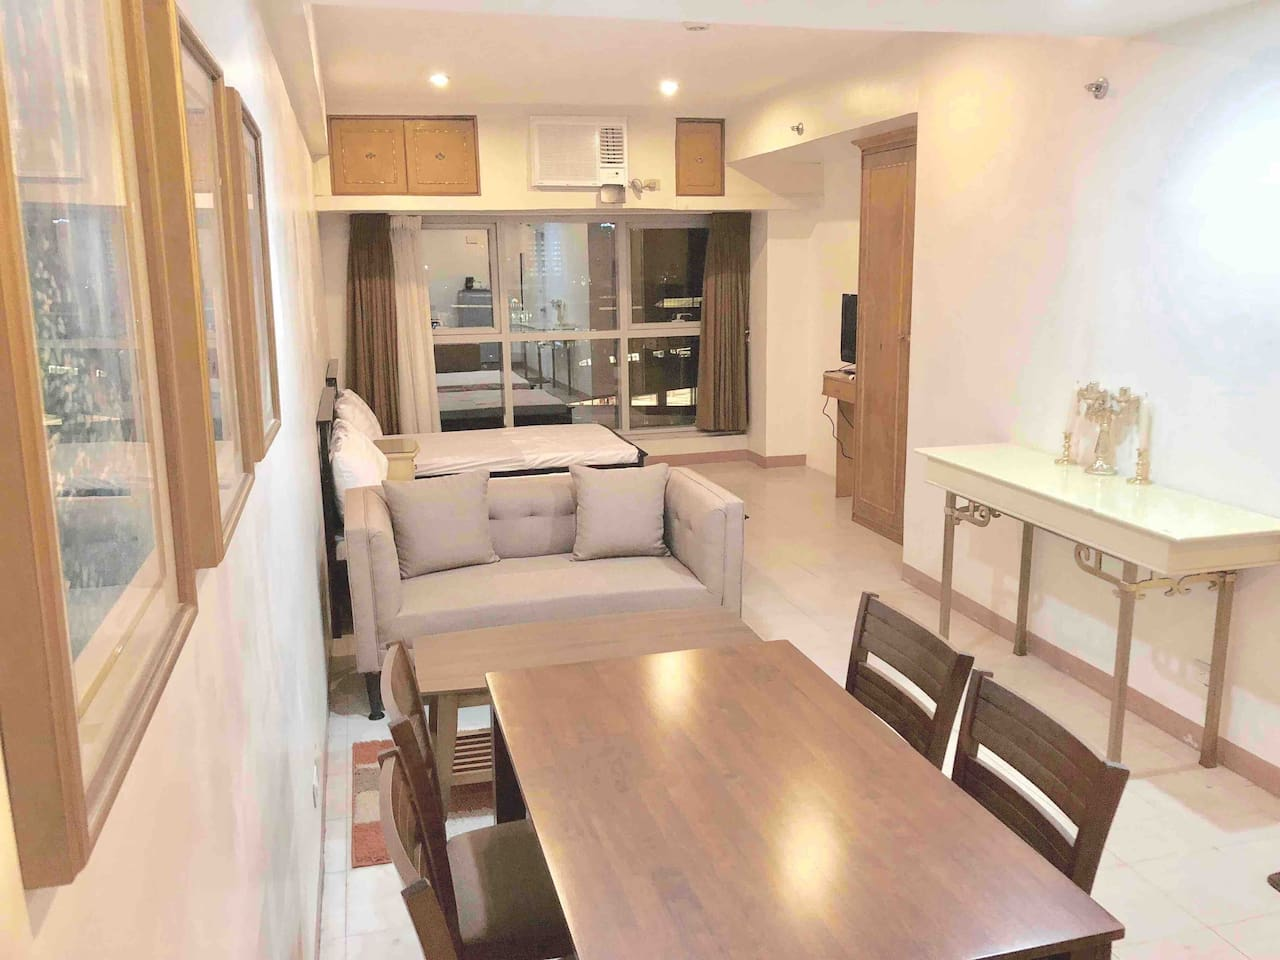 This is a 34 sqm unit at the heart of Filinvest City. It has 2 double  sized  beds good for 4  people and 1 extra floor mattress(per request) .  It has a dining area, table  and utensils are good for 4-5 people.